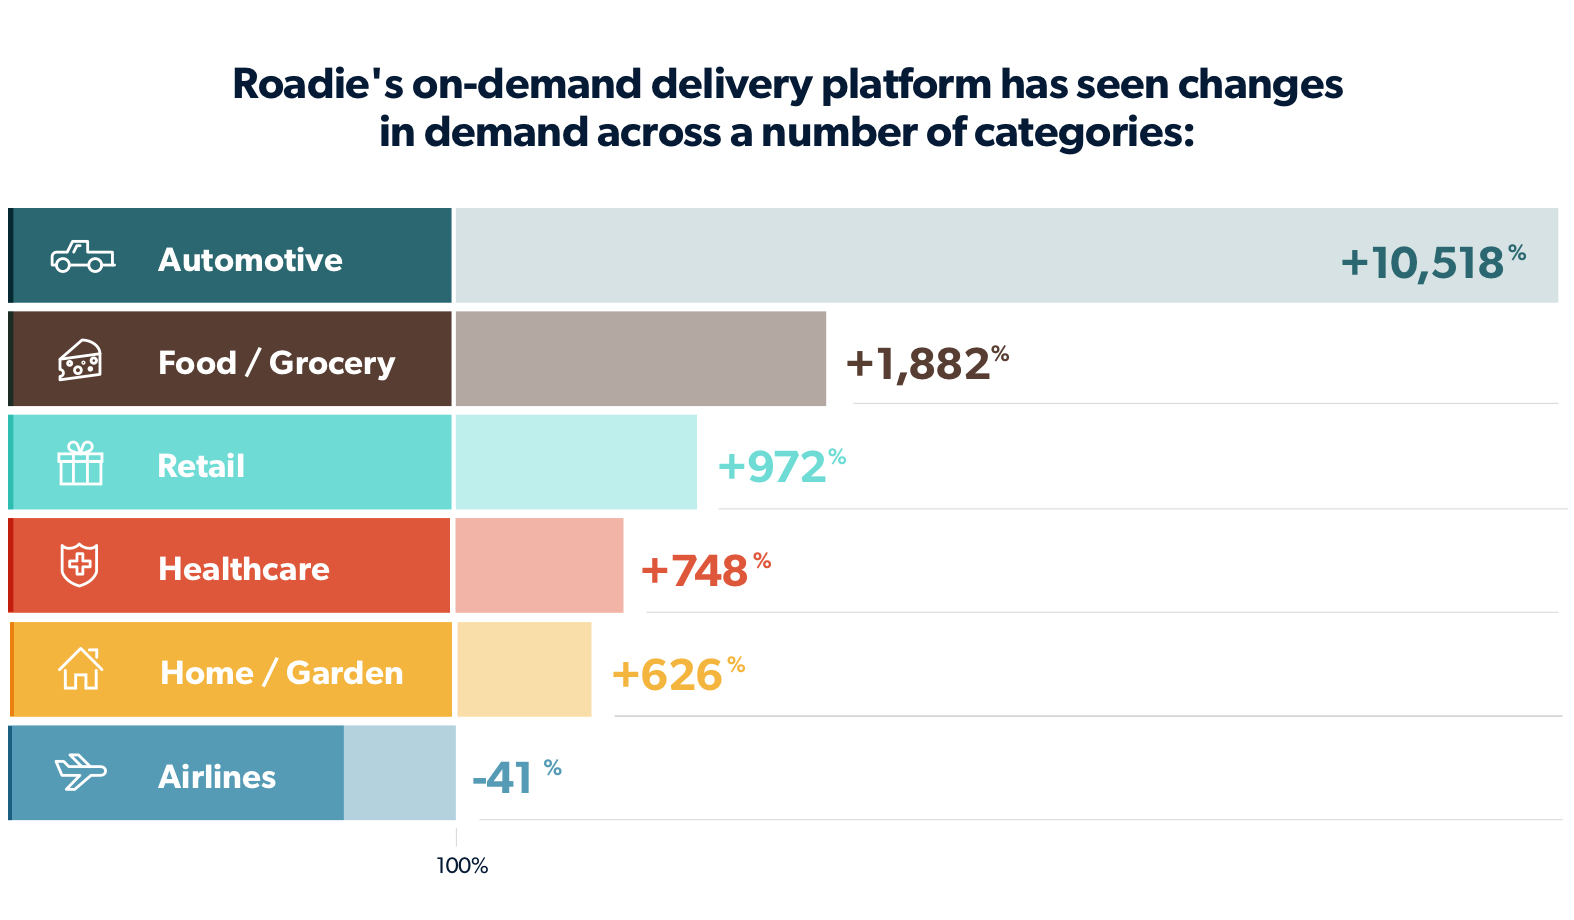 2020 Saw Significant Changes in On-Demand Delivery for Various Industries | Roadie